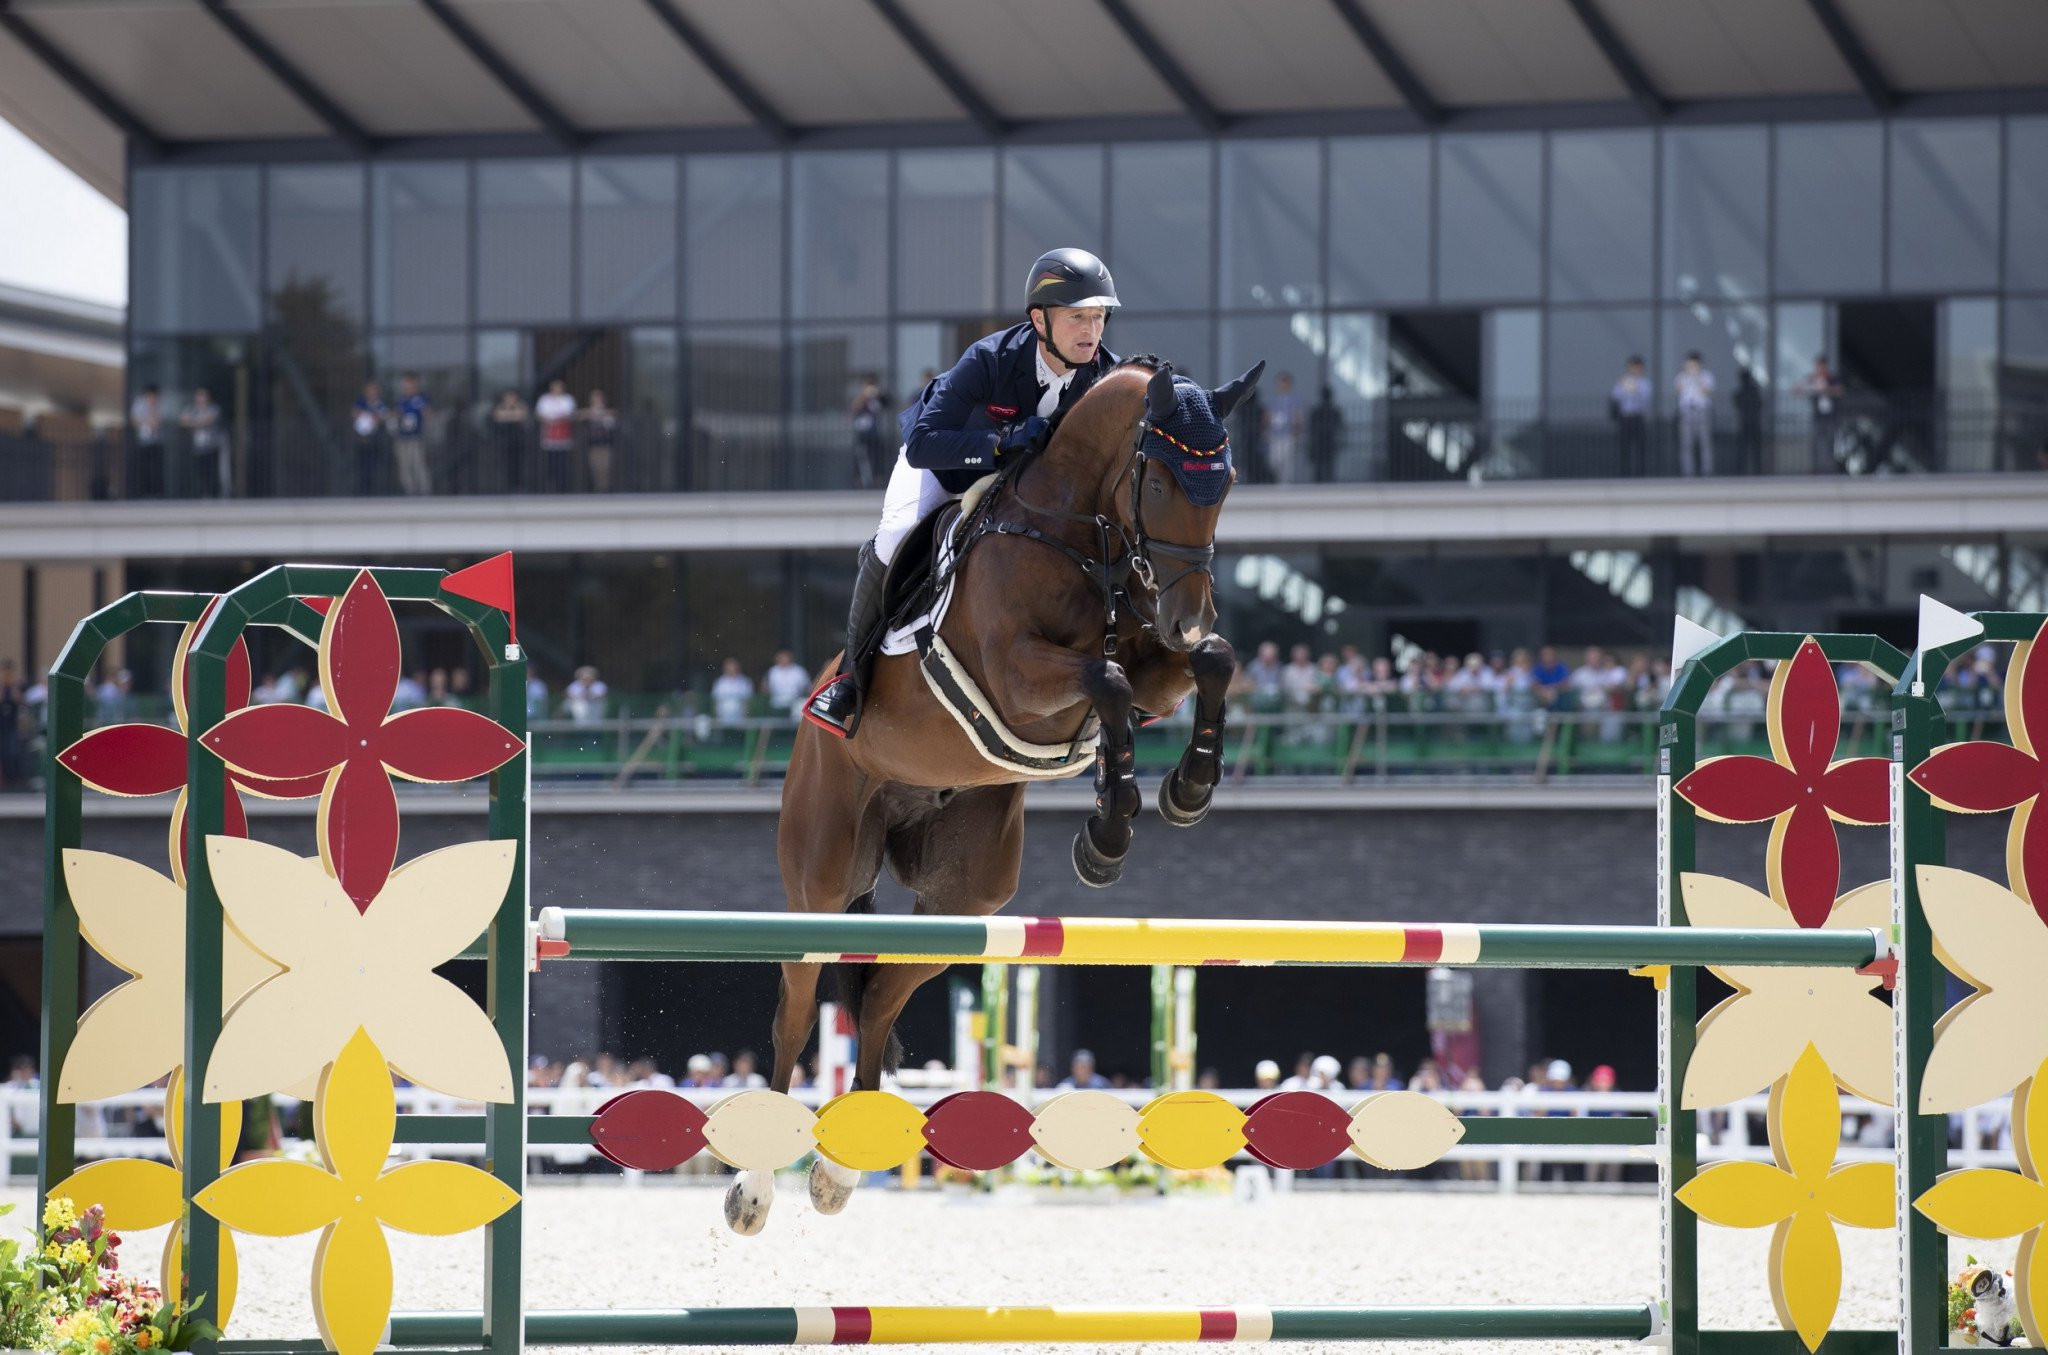 Germany's Michael Jung won the eventing test event ©FEI